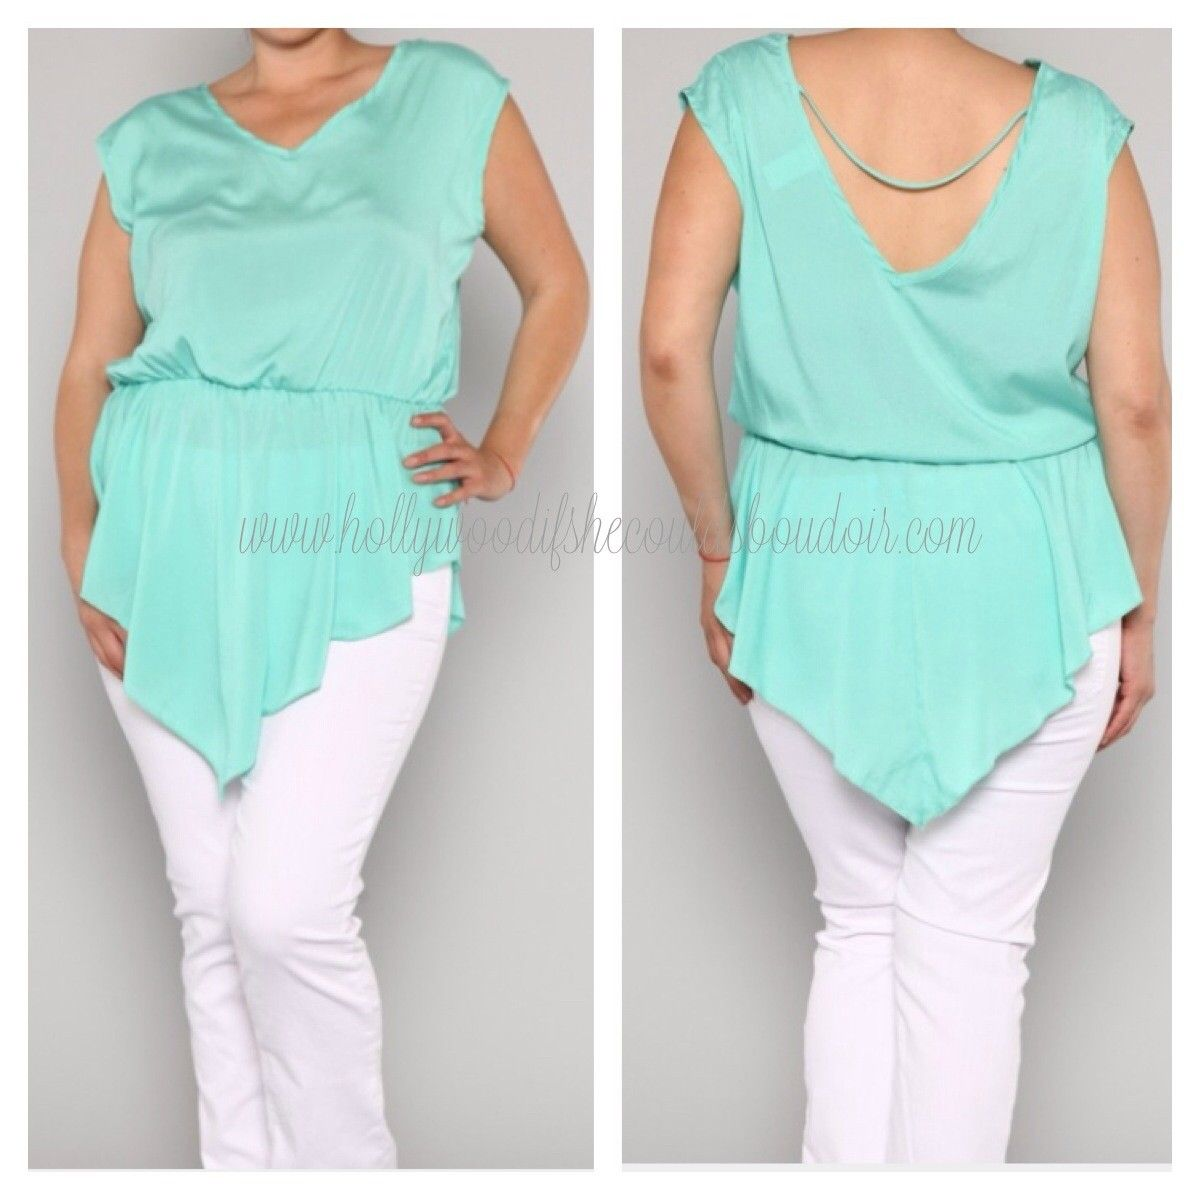 HollyWood if She Could Boudoir - She-ra Top in Mint, $25.00 (http://www.hollywoodifshecouldsboudoir.com/she-ra-top-in-mint/)